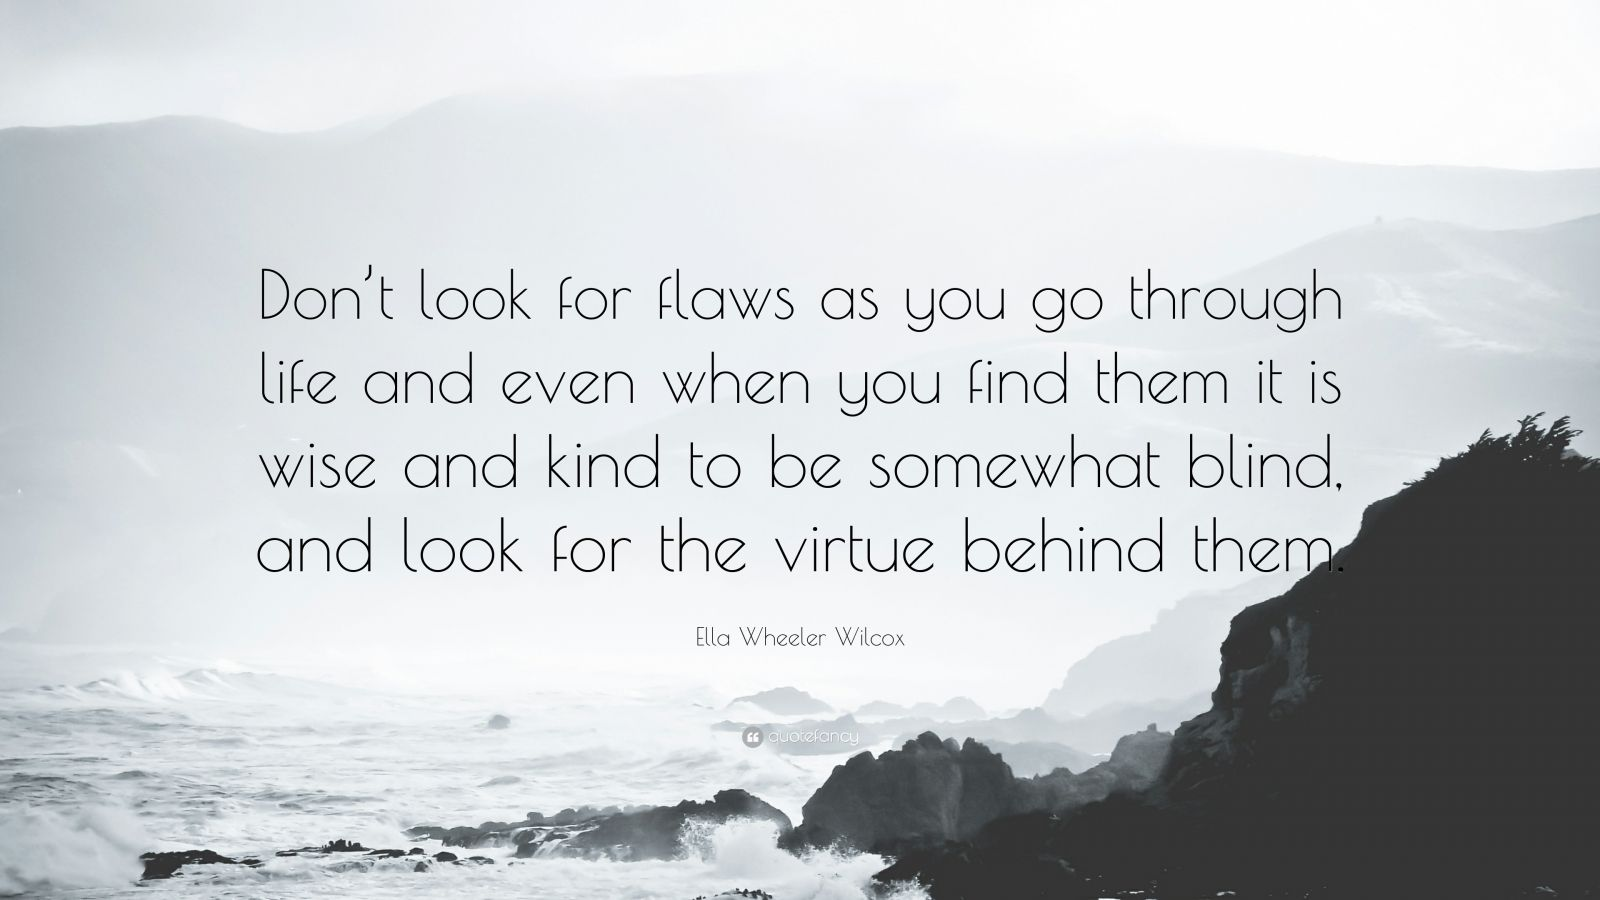 """Ella Wheeler Wilcox Quote: """"Don't look for flaws as you go through life and even when you find them it is wise and kind to be somewhat blind, and look for the virtue behind them."""""""